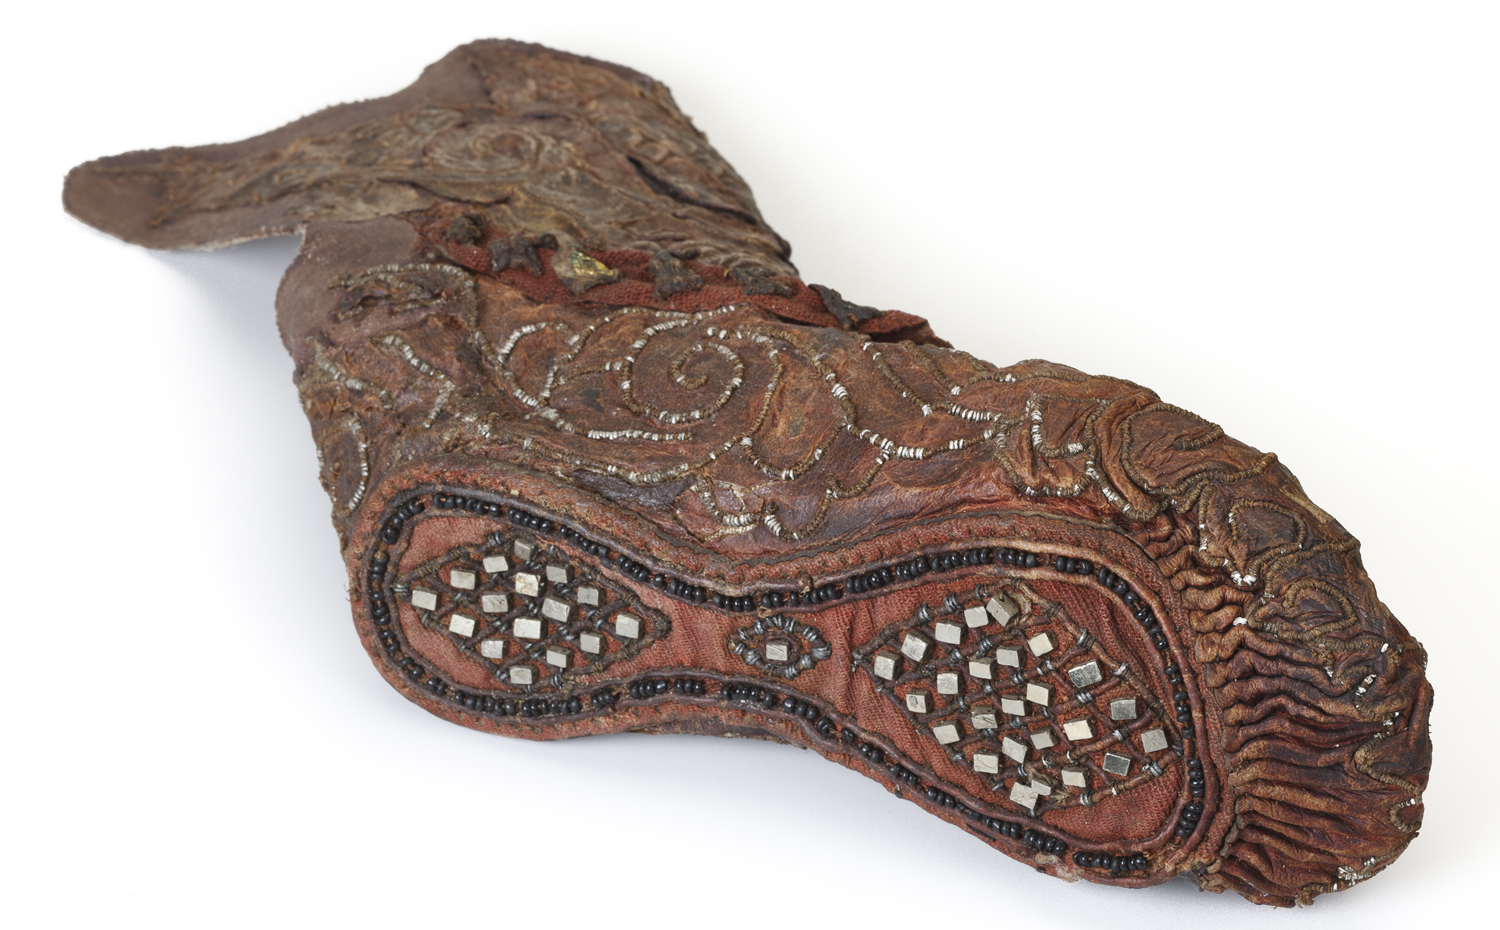 This woman's shoe includes leather, tin, pyrite crystals, gold foil, and glass beads.